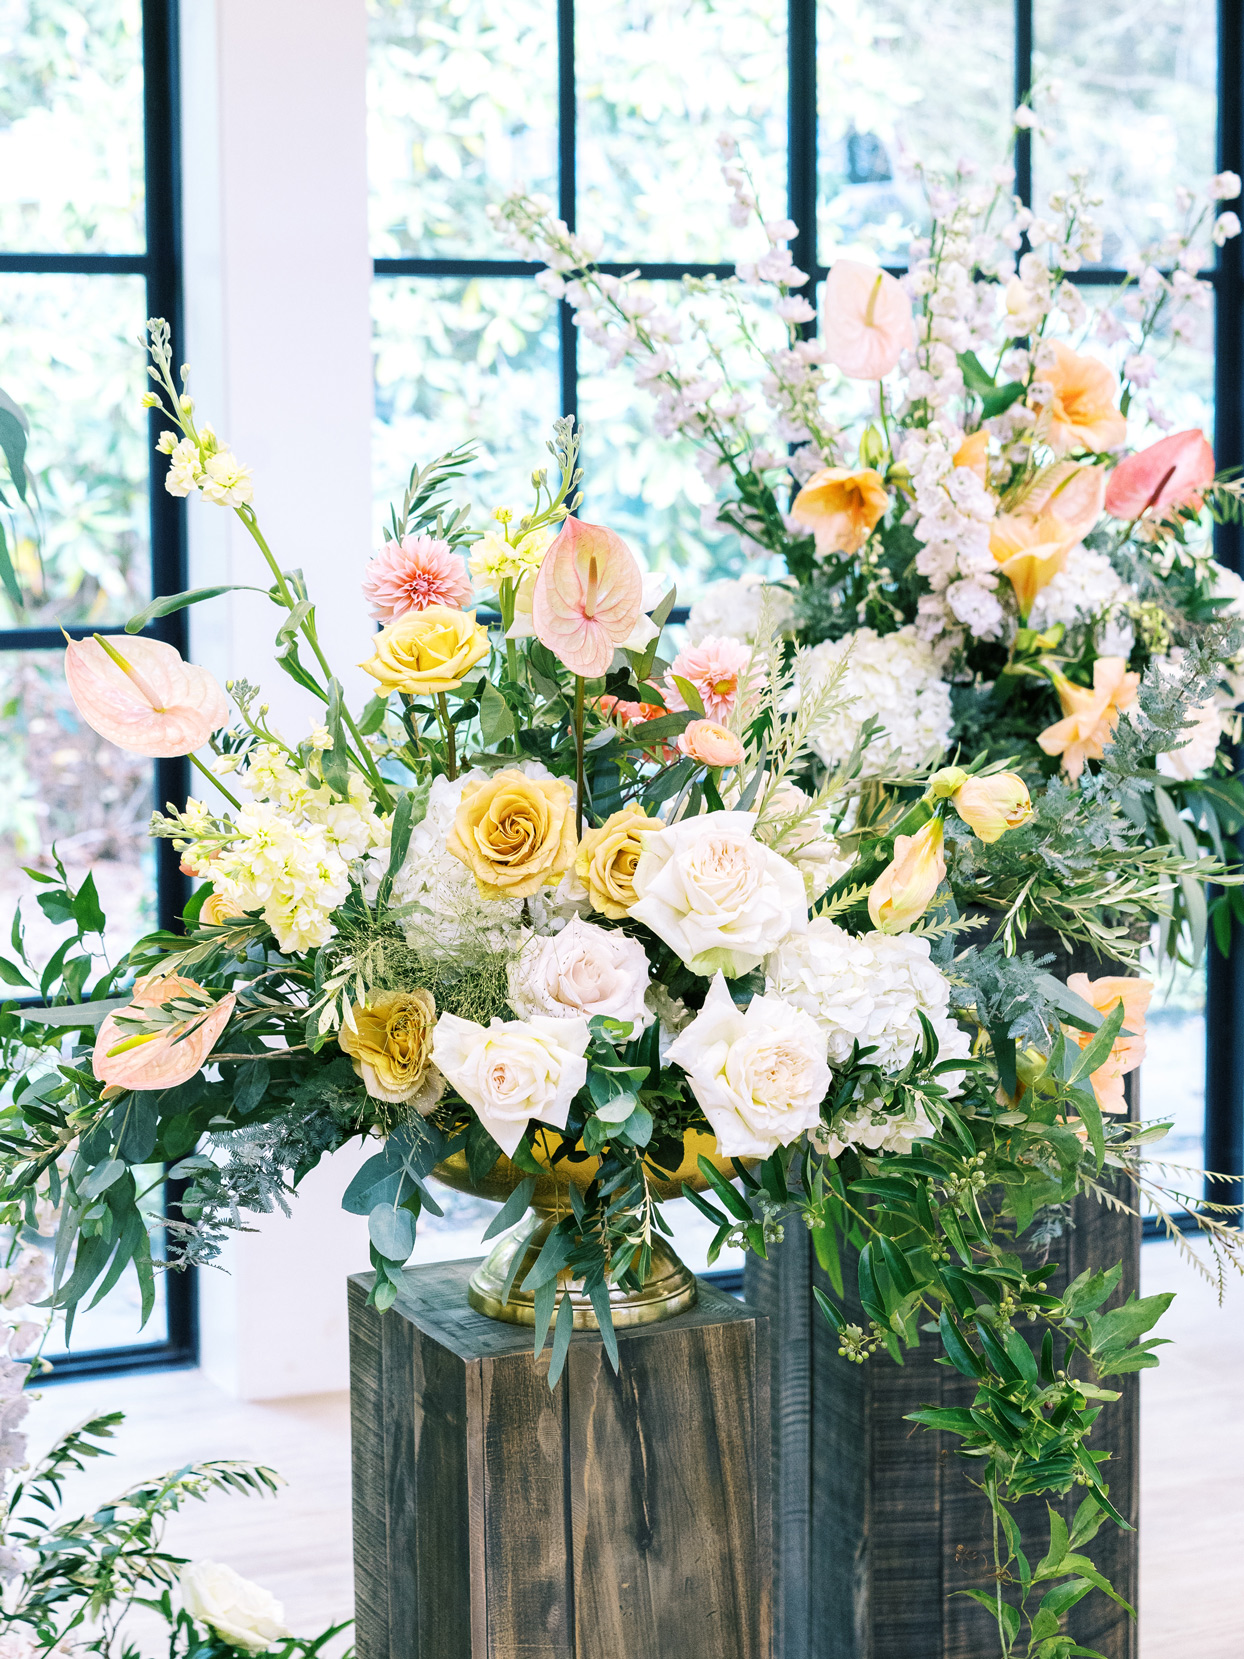 Large urns with roses, hydrangeas, and other dramatic blooms